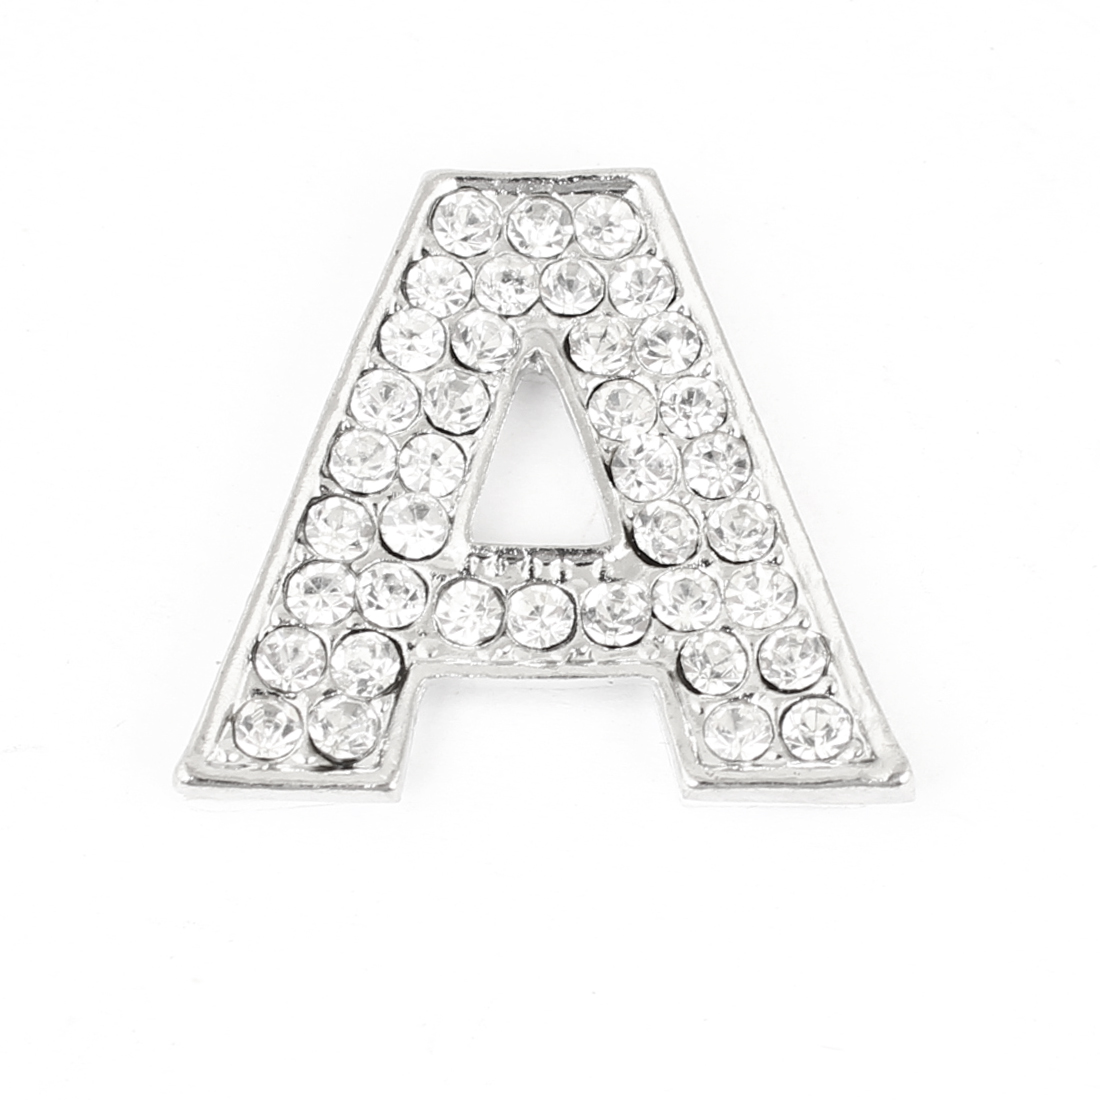 Bling Rhinestones Inlaid Silver Tone Letter A Shaped Car Sticker Decoration